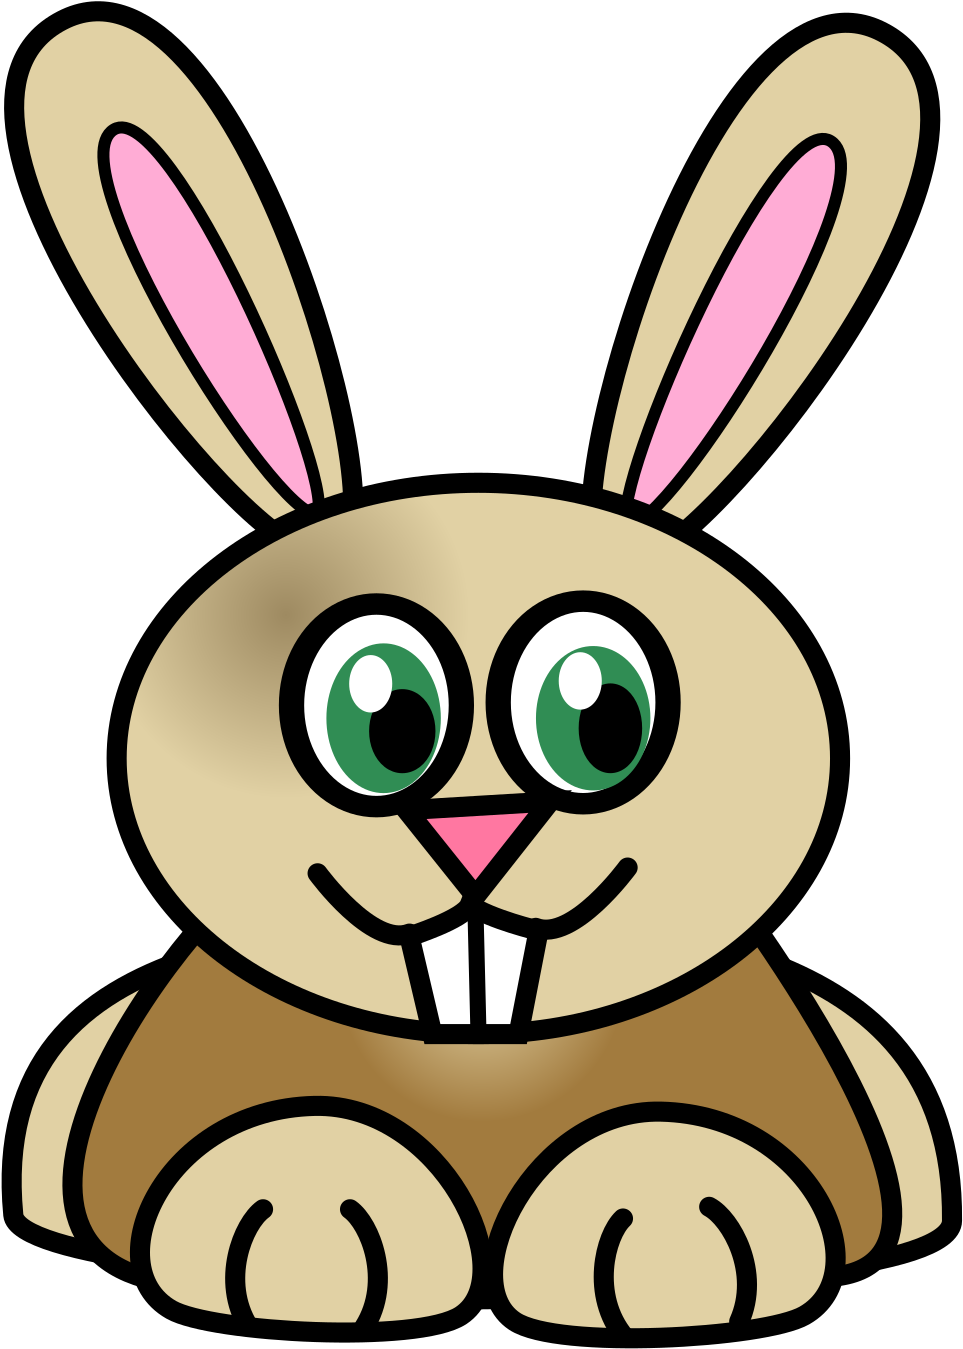 Clipart Lapin Png Download Full Size Clipart 5521262 Pinclipart